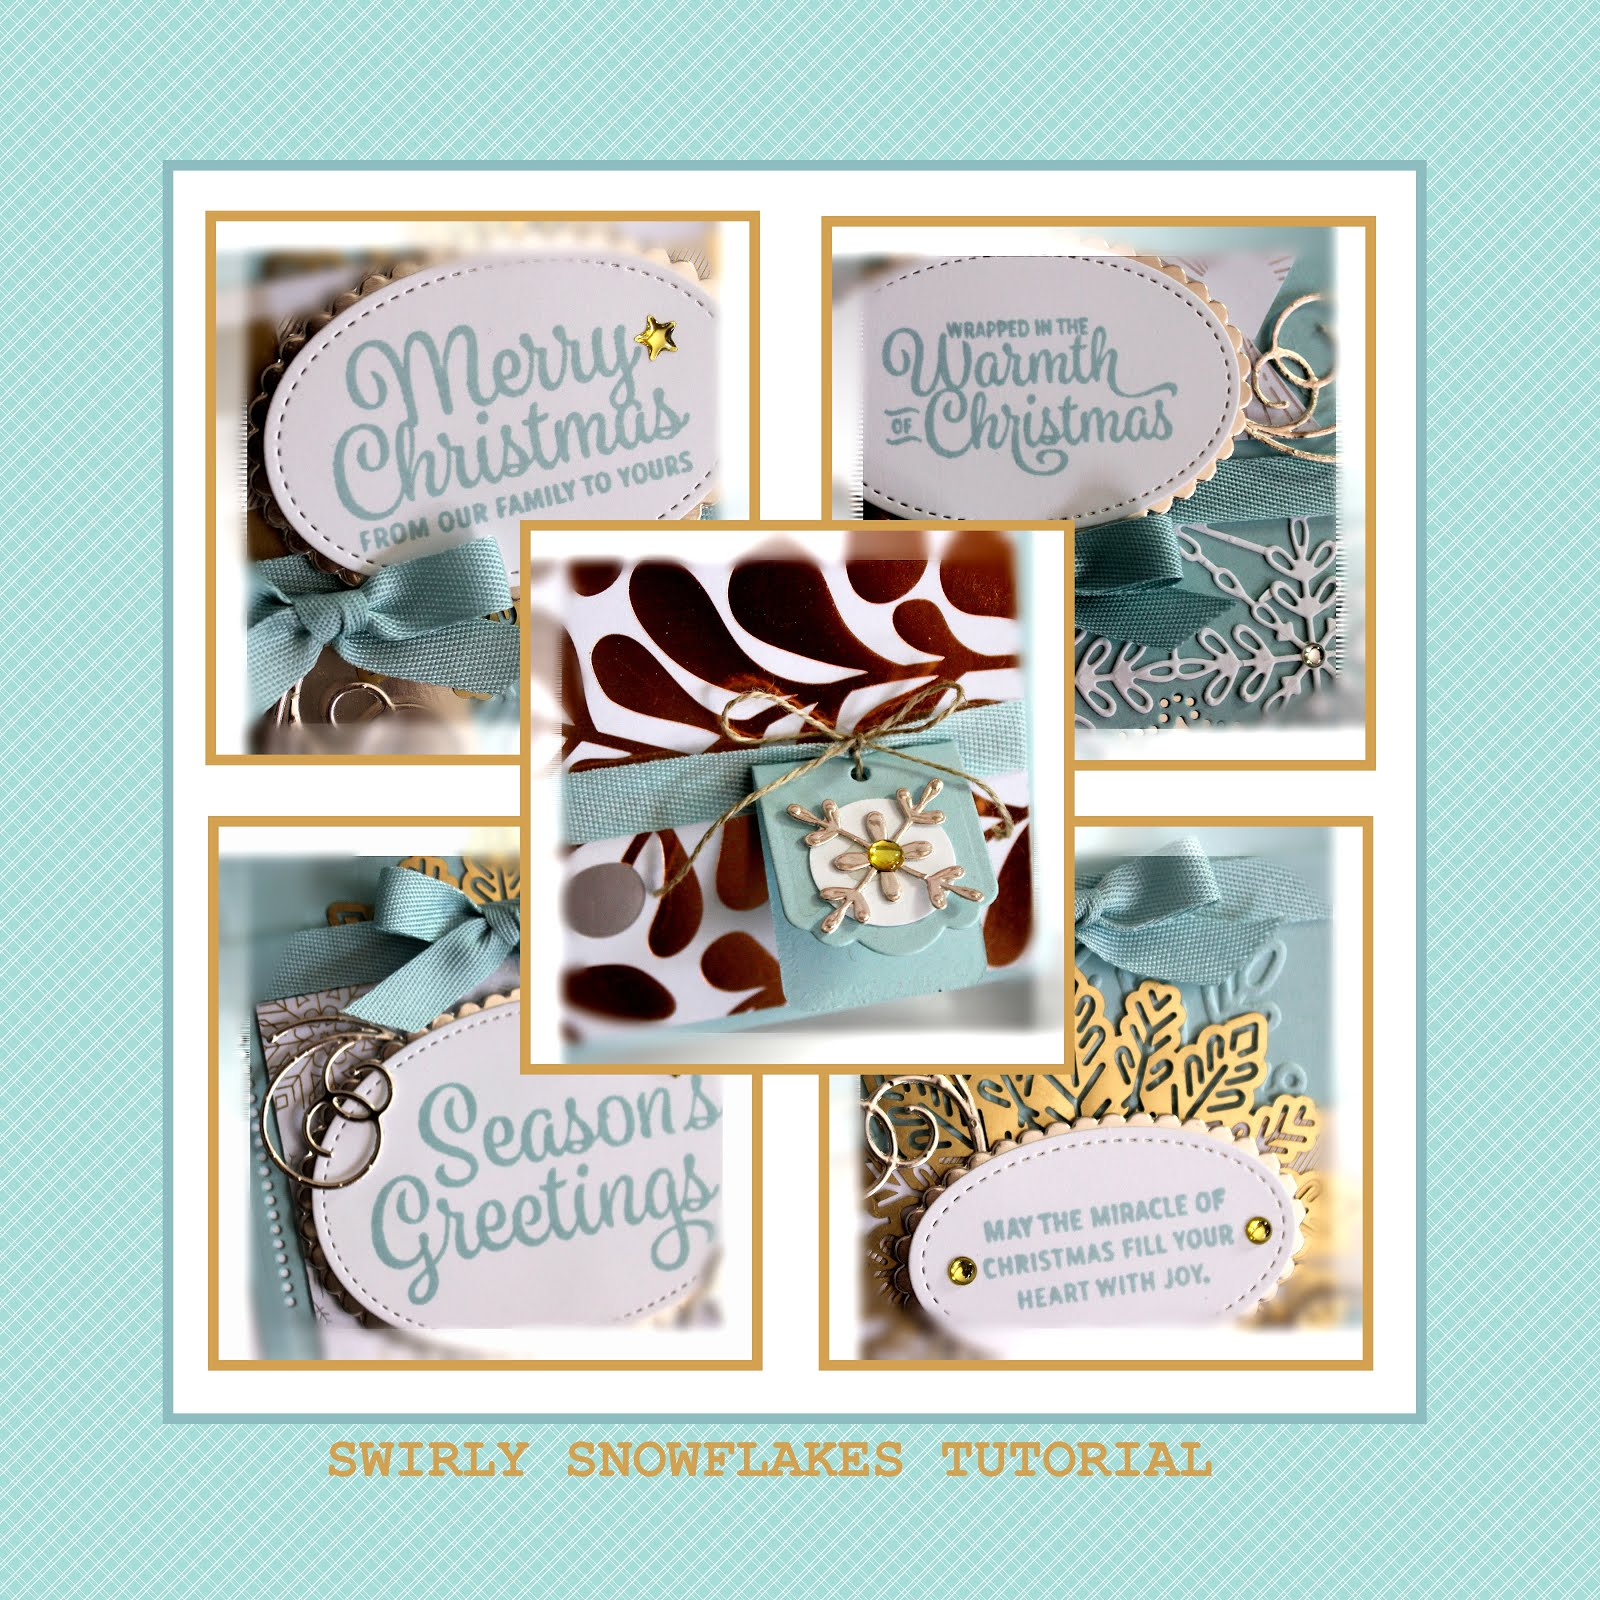 December 2017 Swirly Snowflakes Tutorial